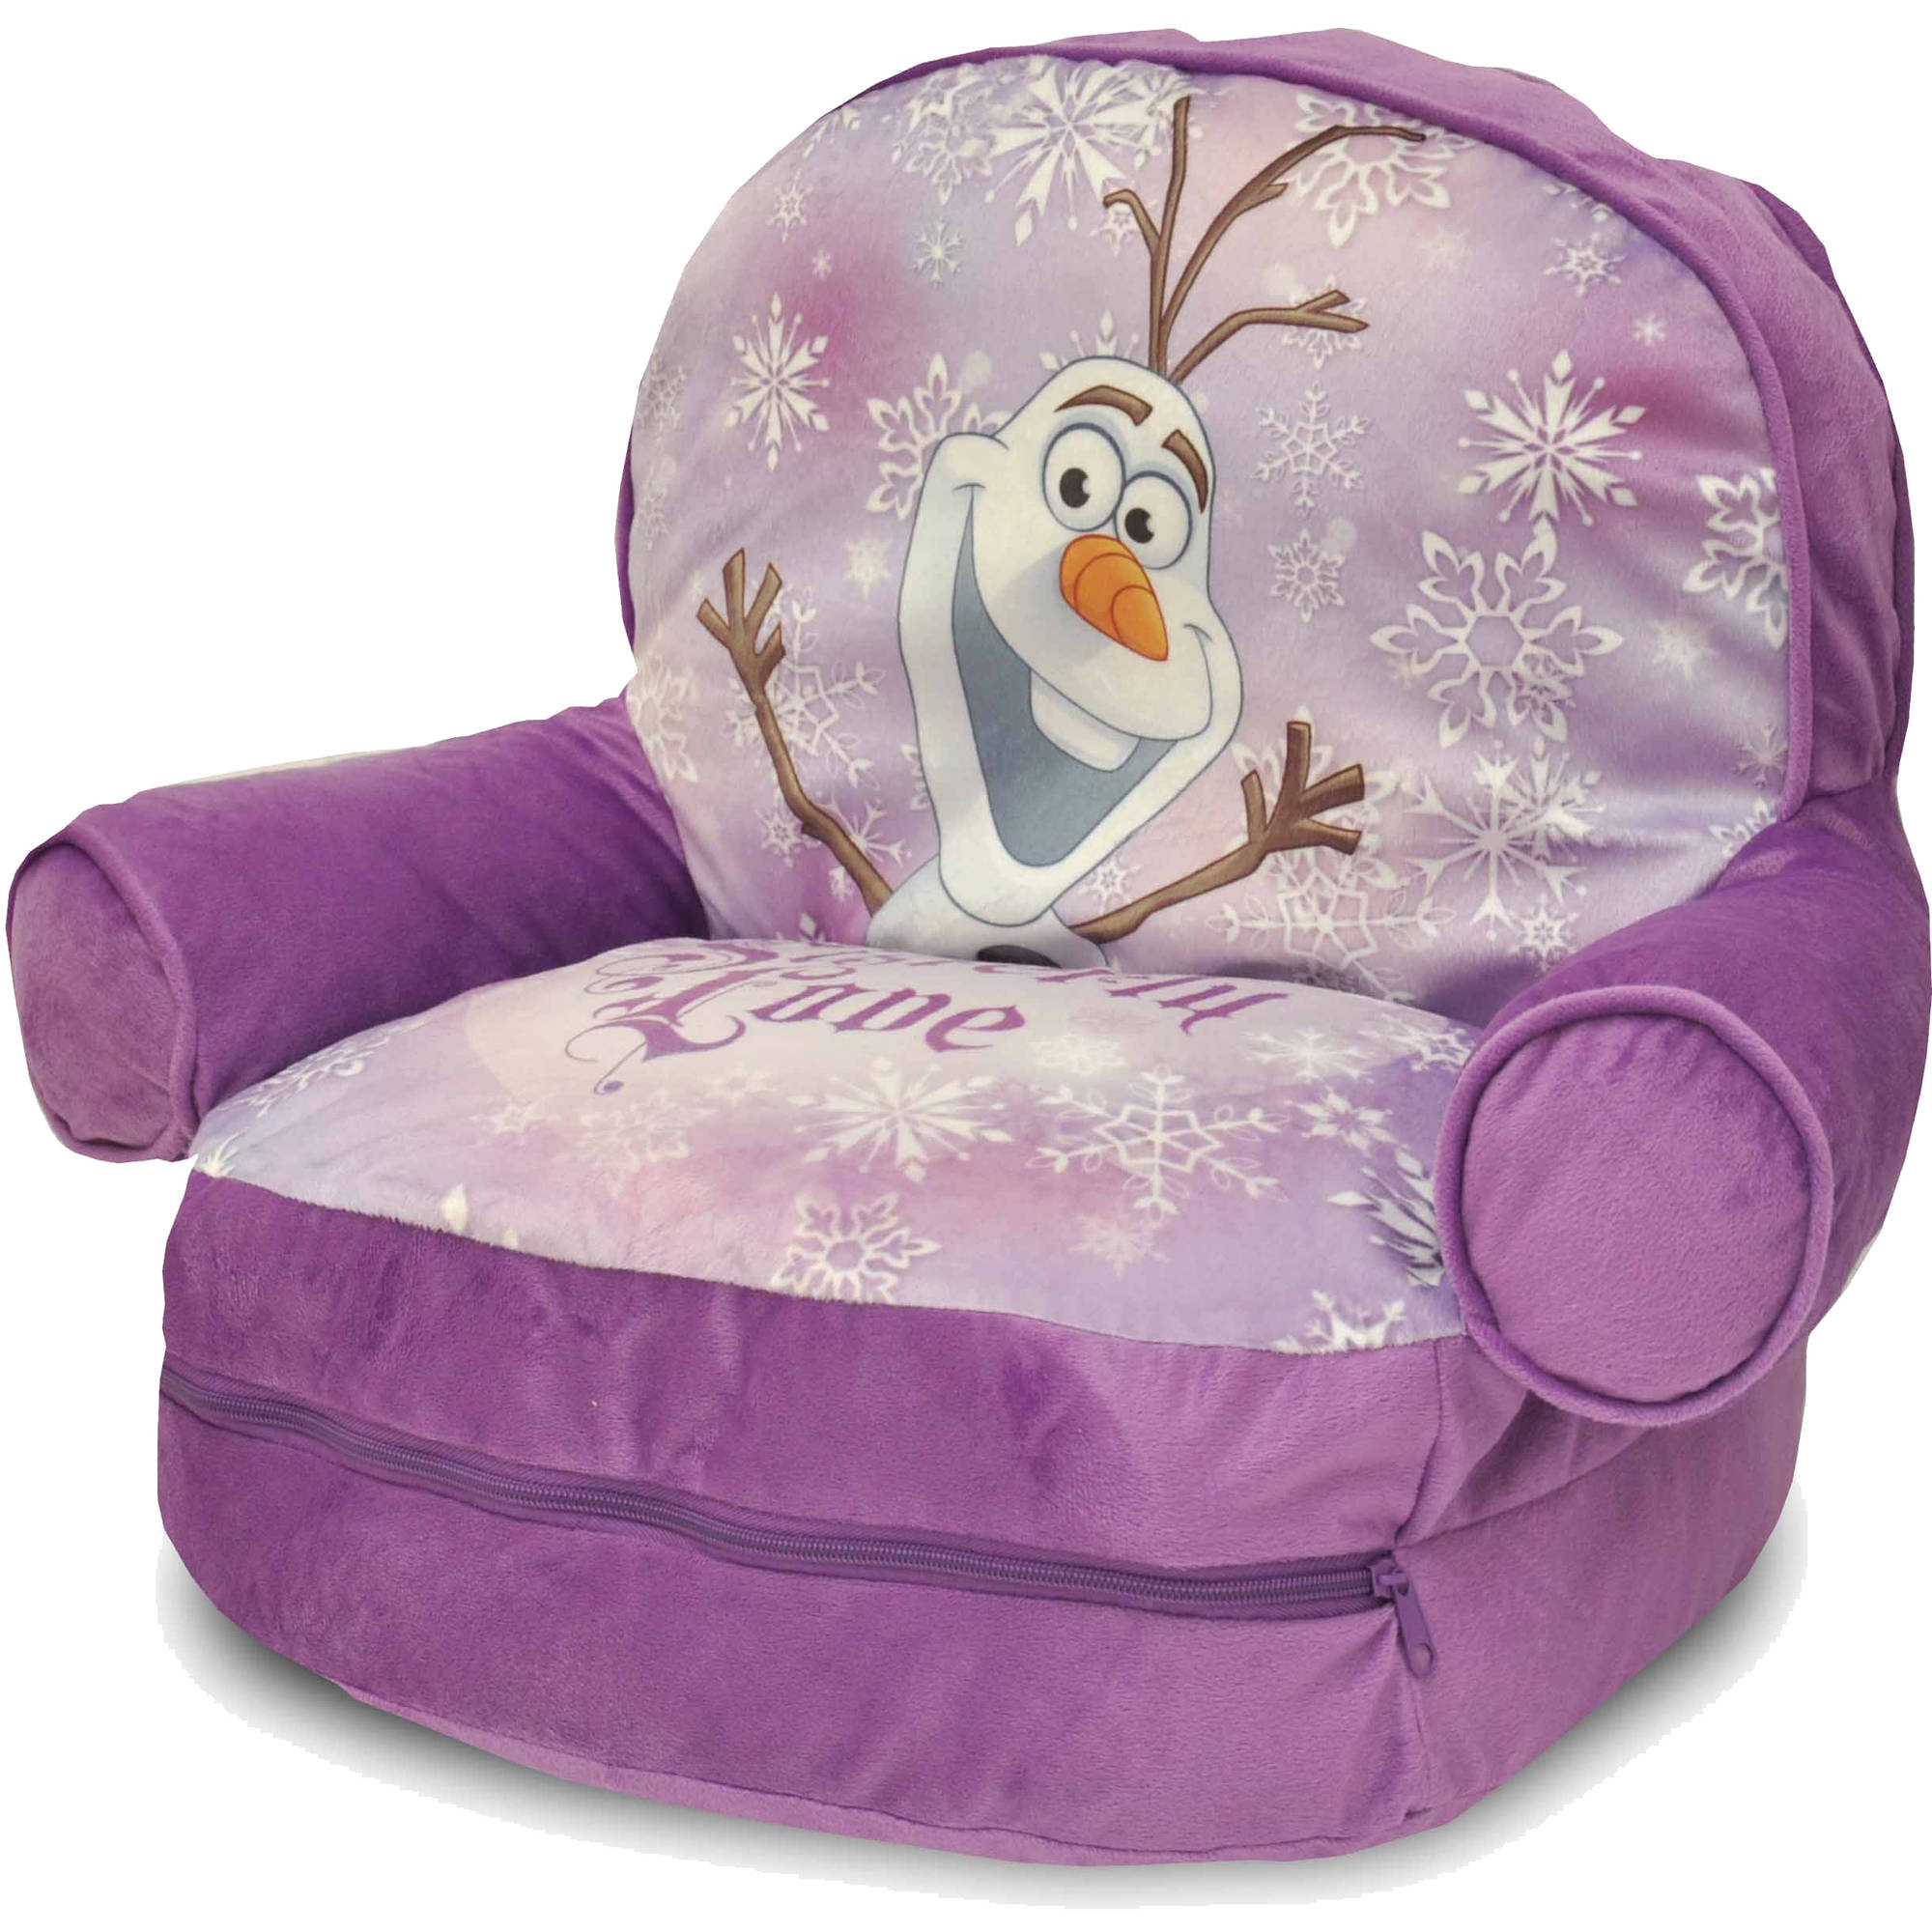 Disney Frozen Bean Bag with BONUS Slumber Bag